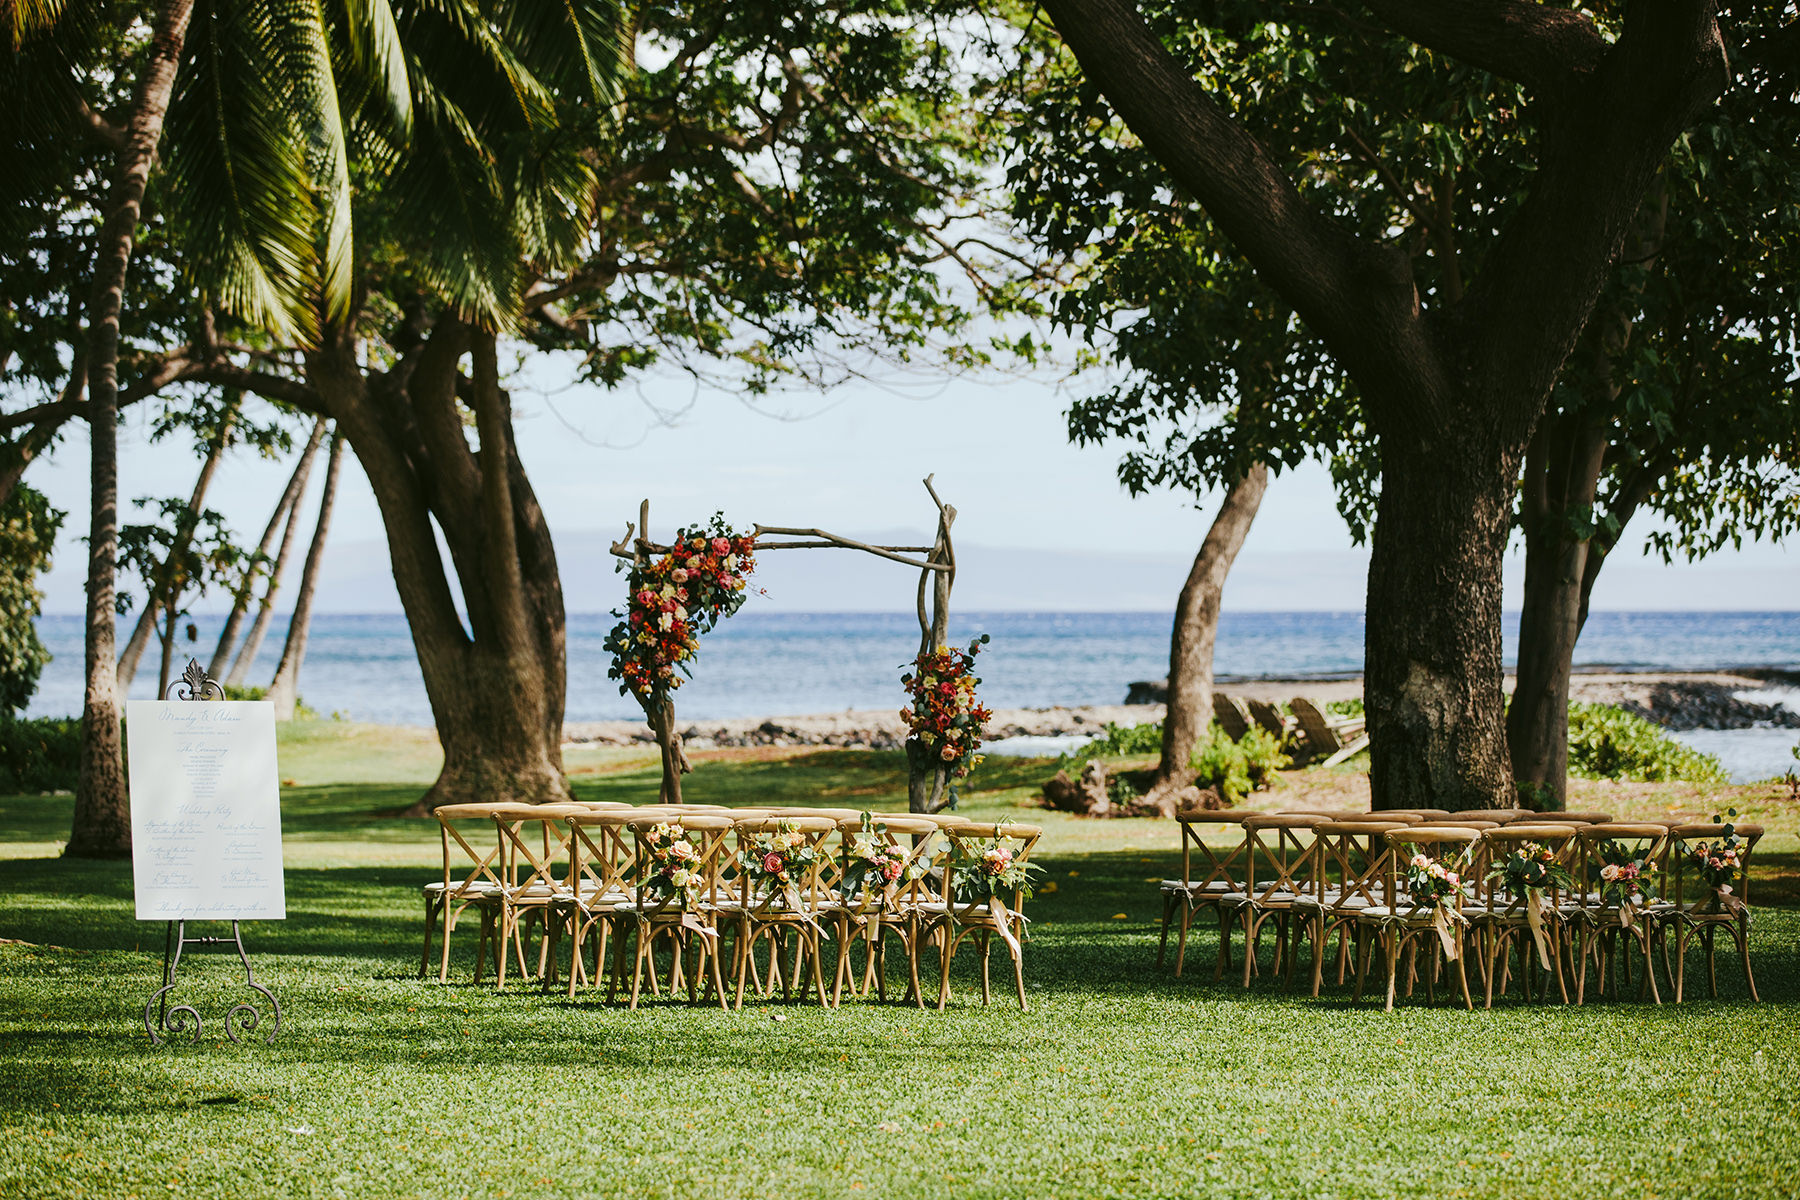 a driftwood floral arch and rustic chairs set by the ocean for a wedding ceremony at Olowalu Plantation house on Maui